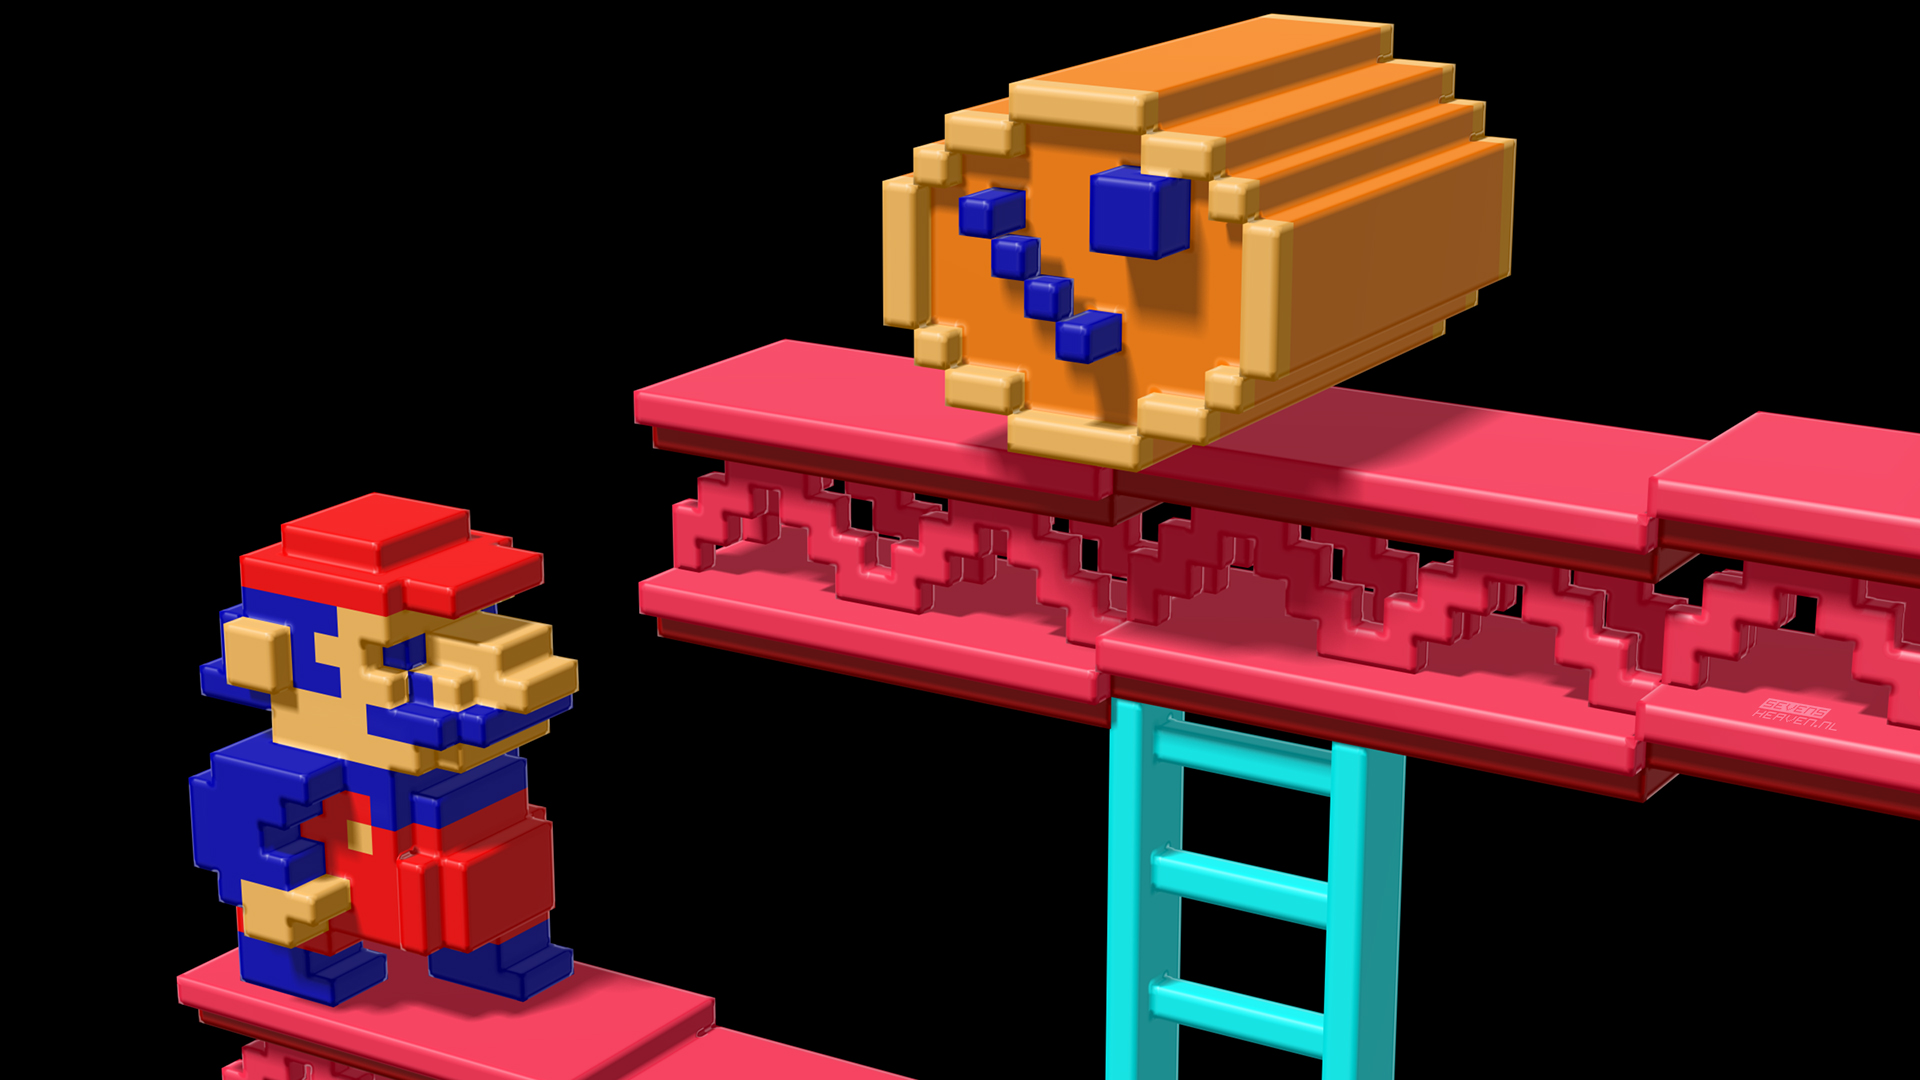 Download free HD Retro 3D Mario Video Game Desktop Wallpaper, image